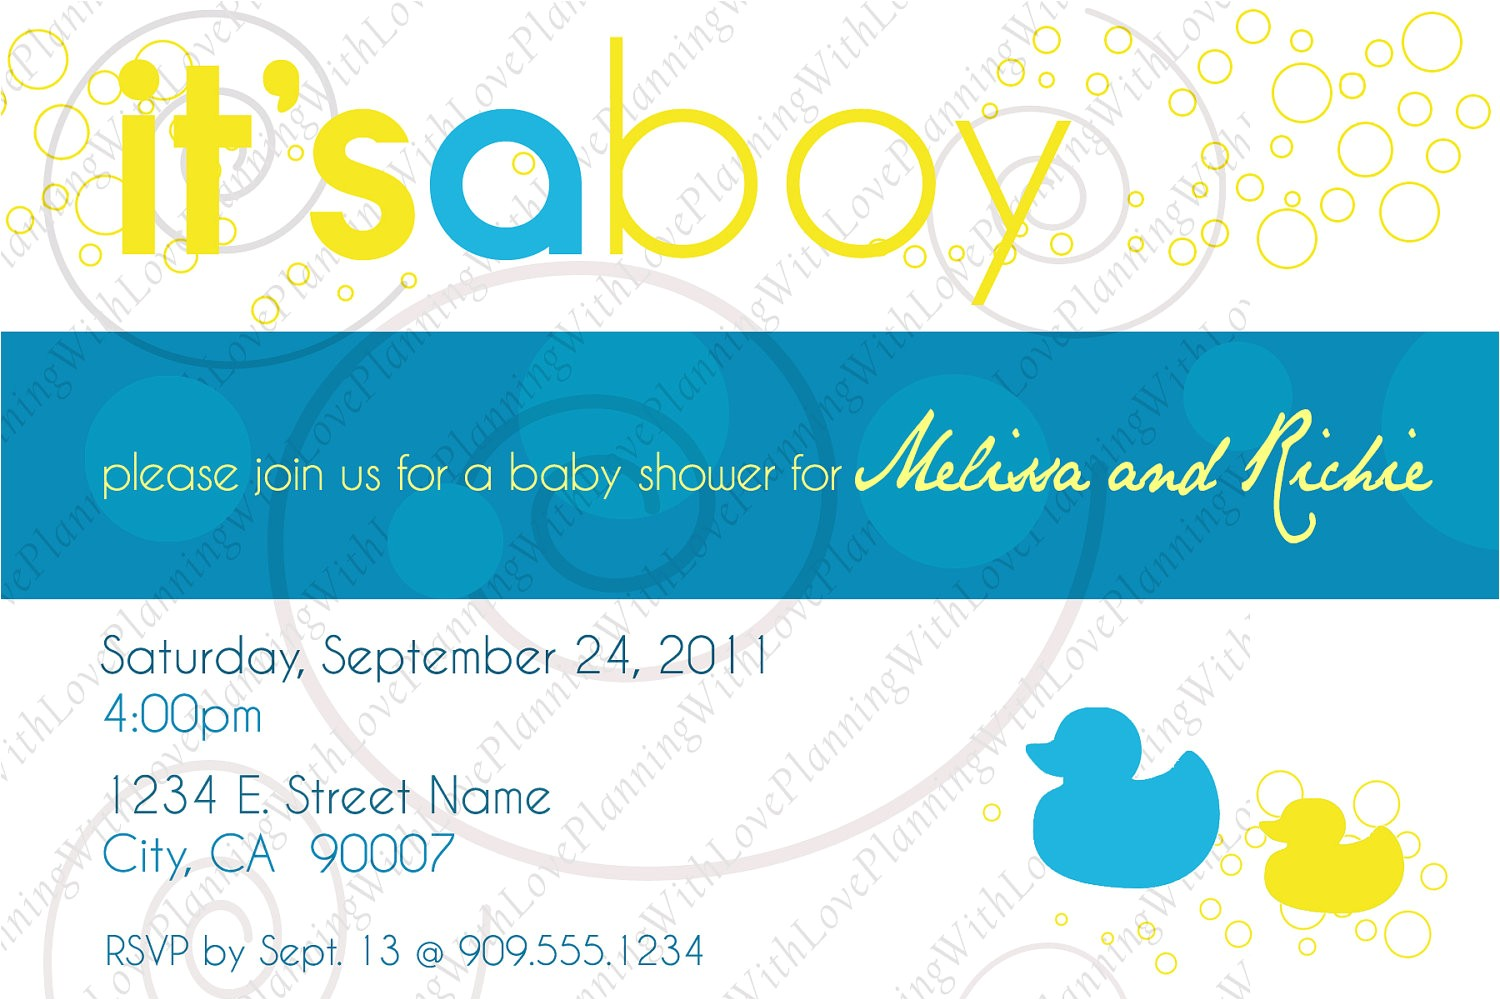 Cheap Rubber Duck Baby Shower Invitations Design Cheap Rubber Duck Baby Shower Invitations Rubber